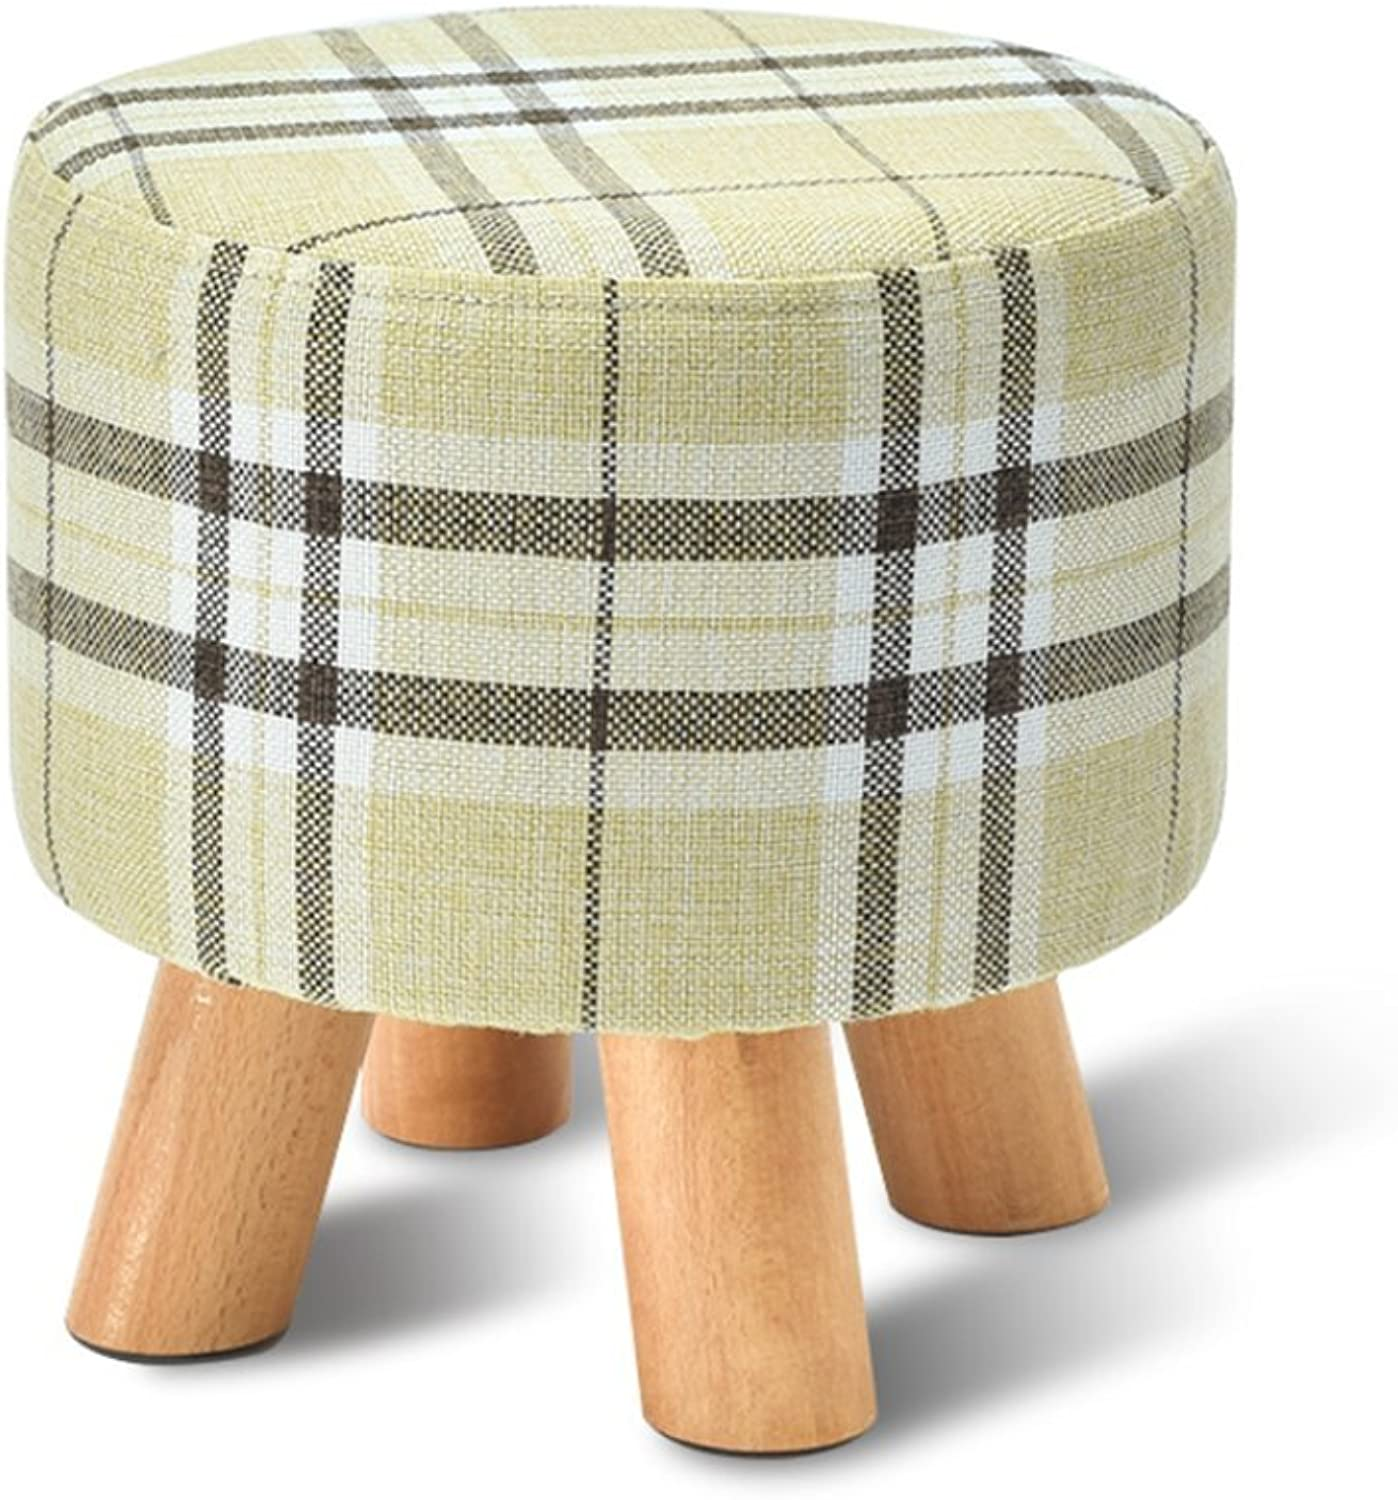 Fabric Small Round Stool, Home Living Room Sofa Bench, Simple Doorway shoes Bench,F